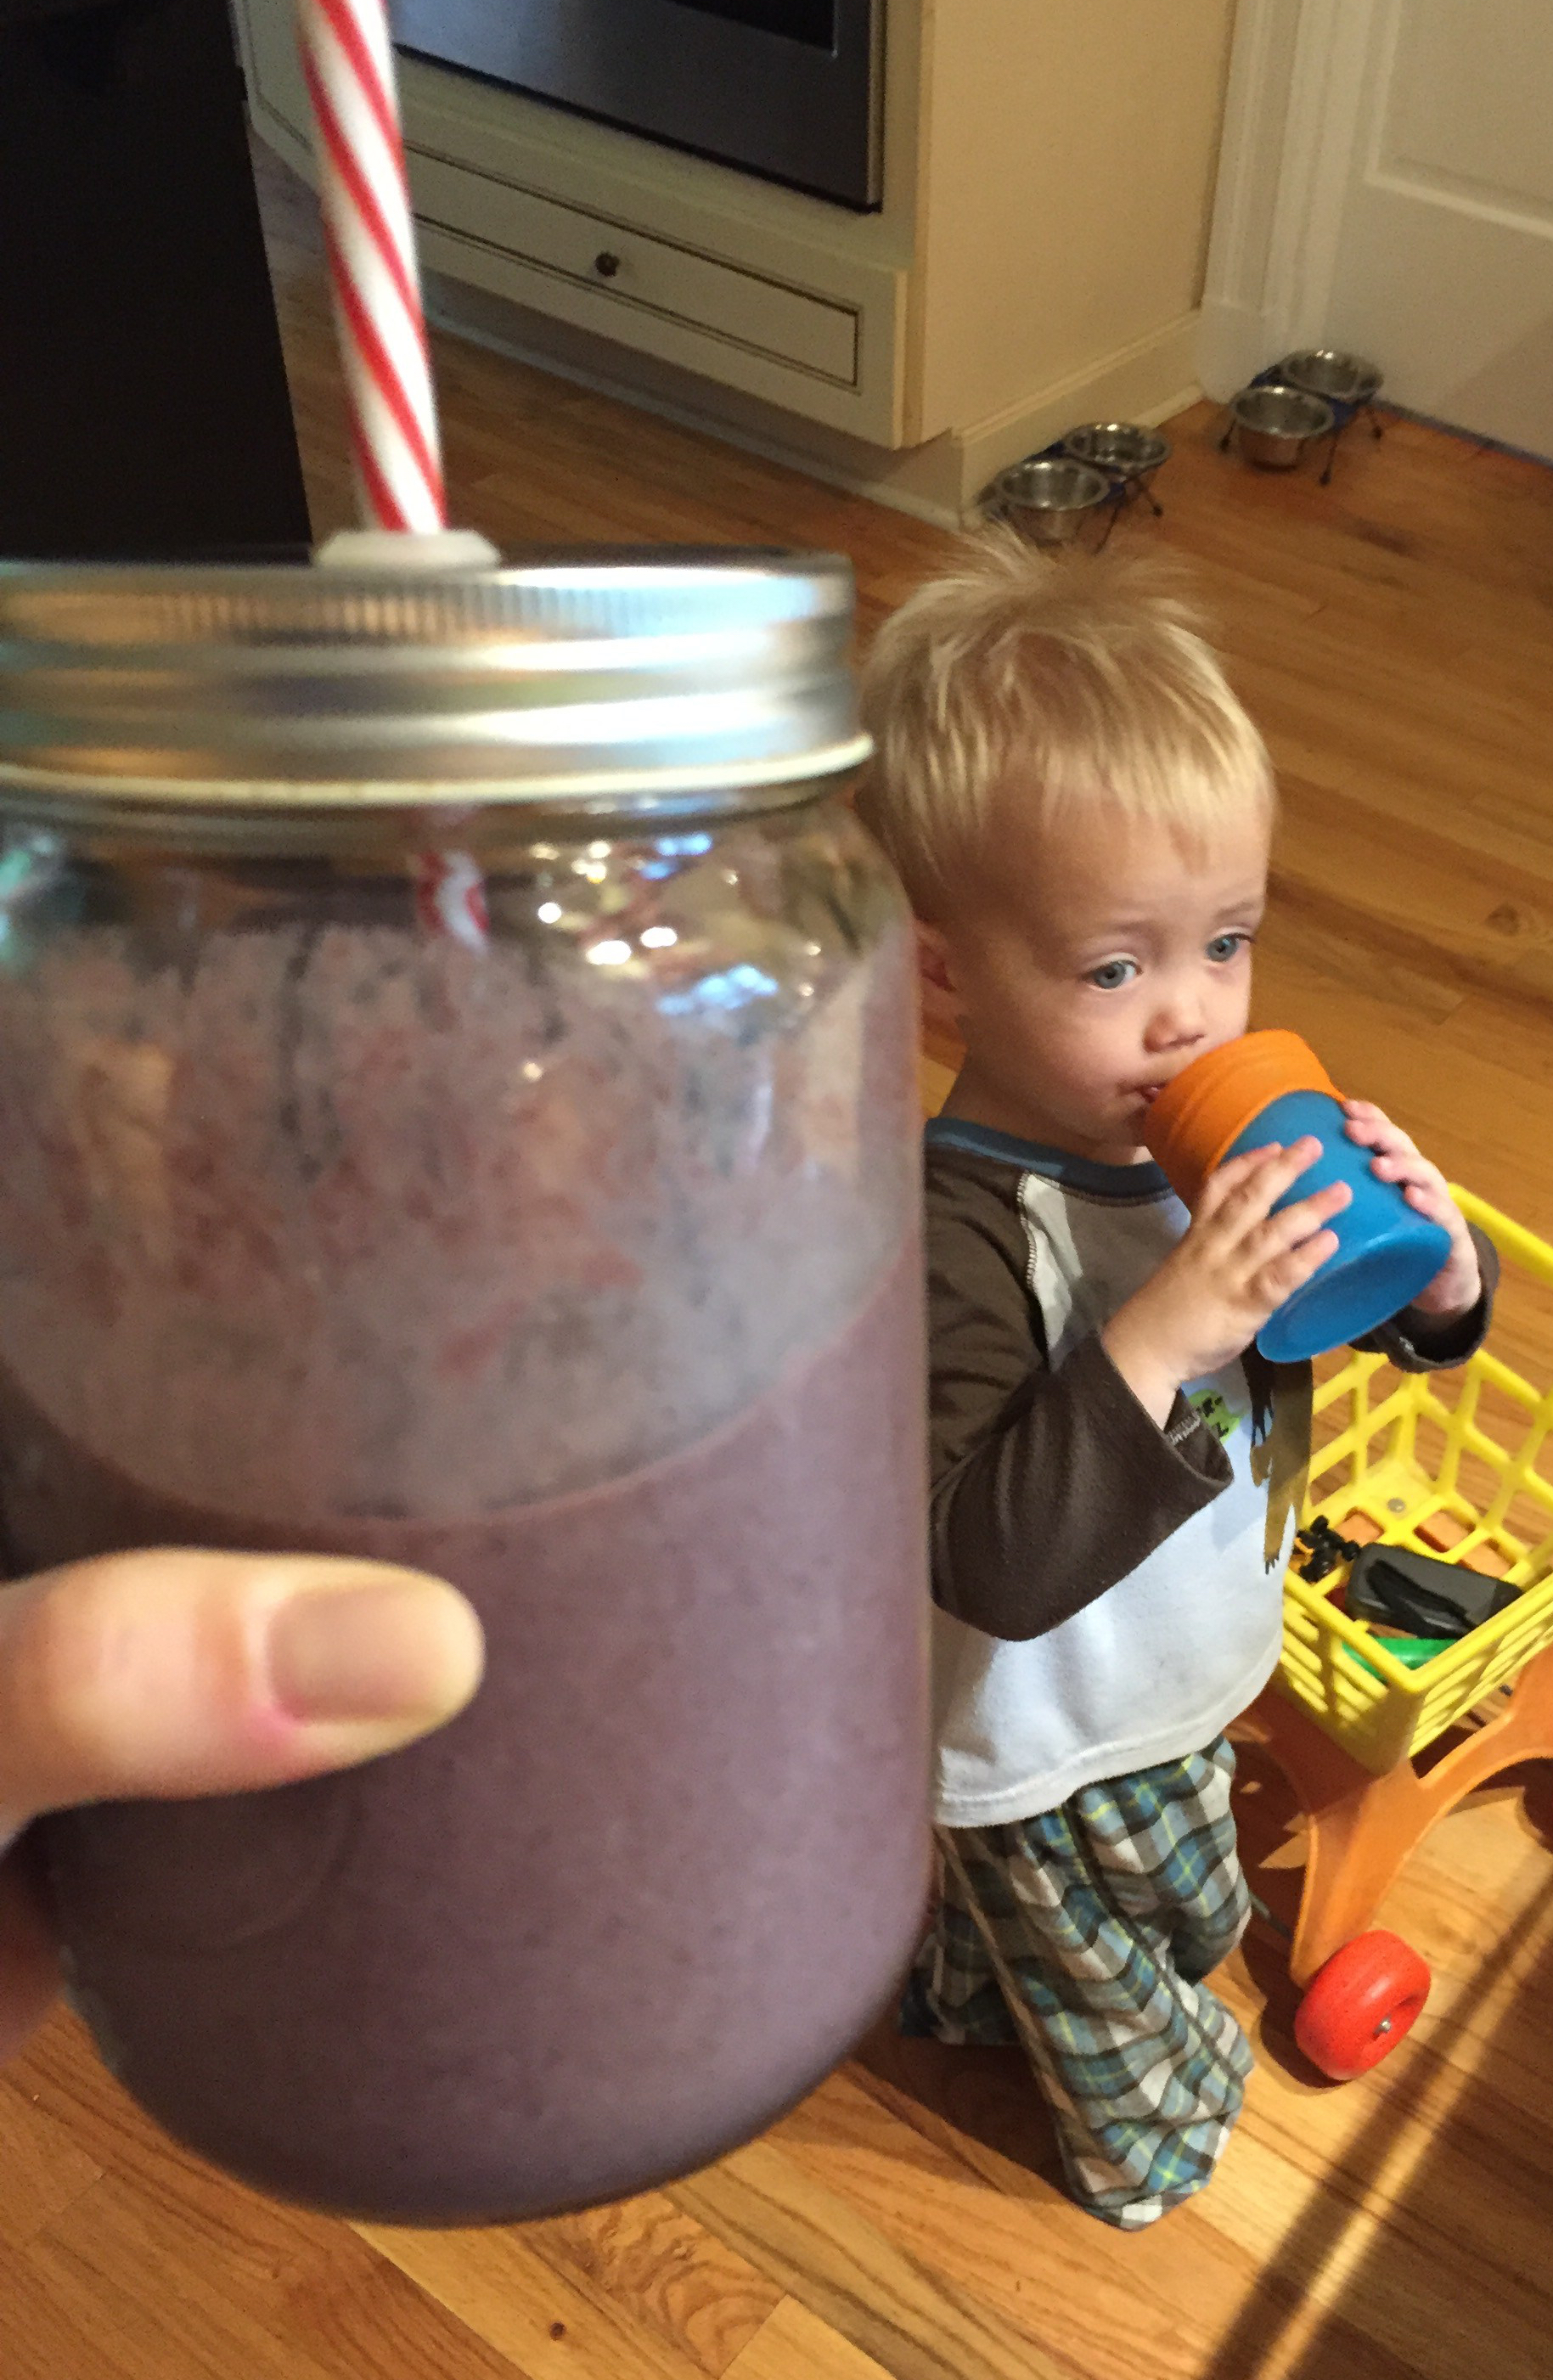 The June Baby and His Smoothie